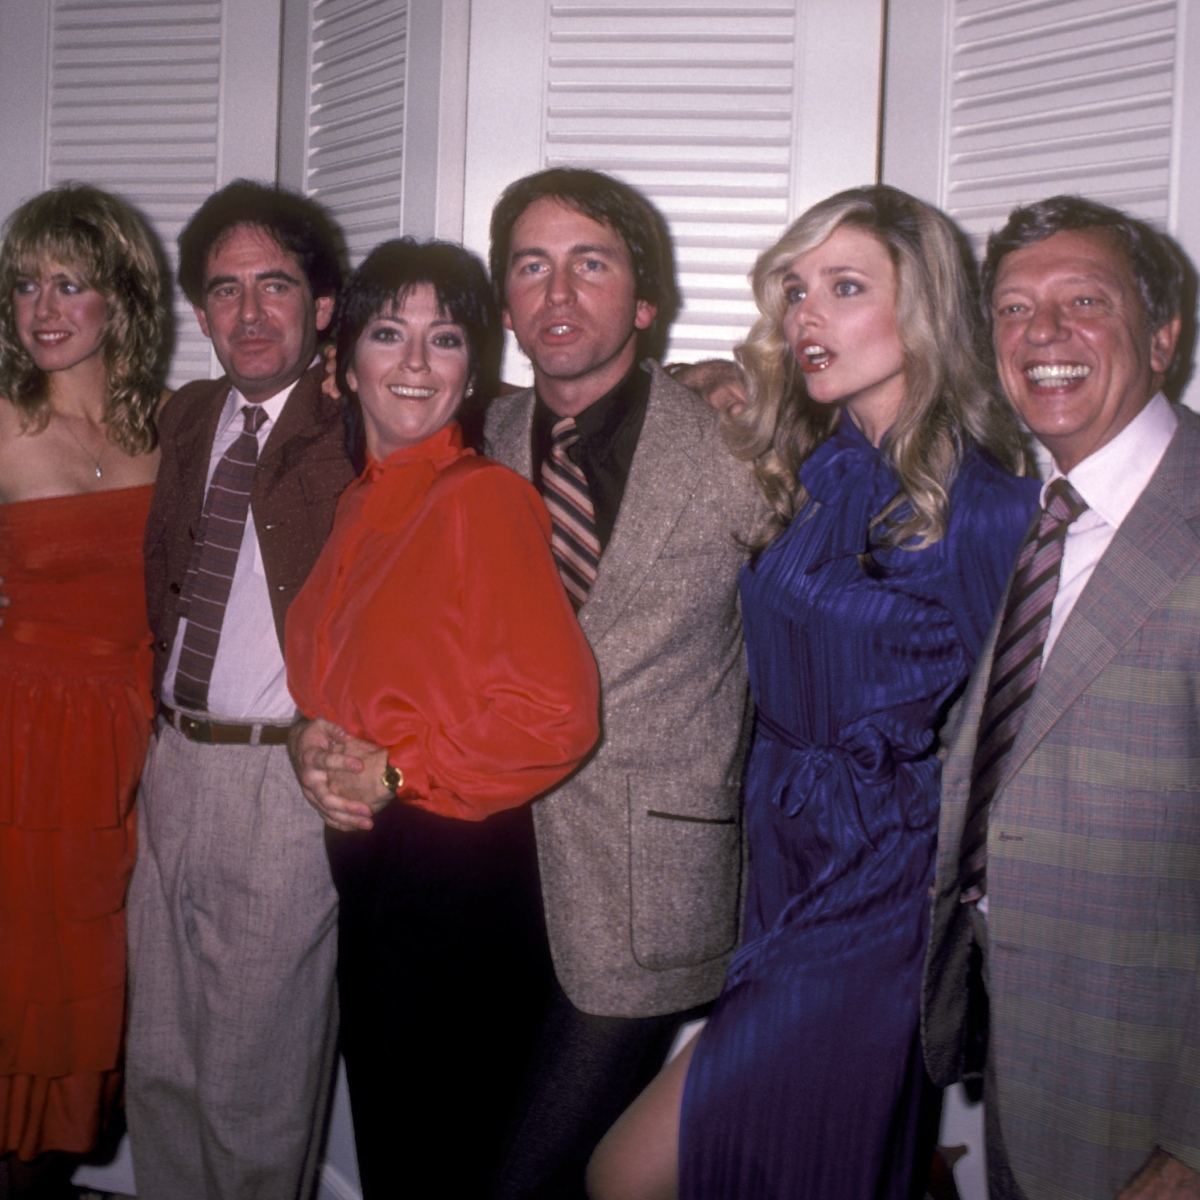 Three's Company' Cast Had Lots of Behind-the-Scenes Drama